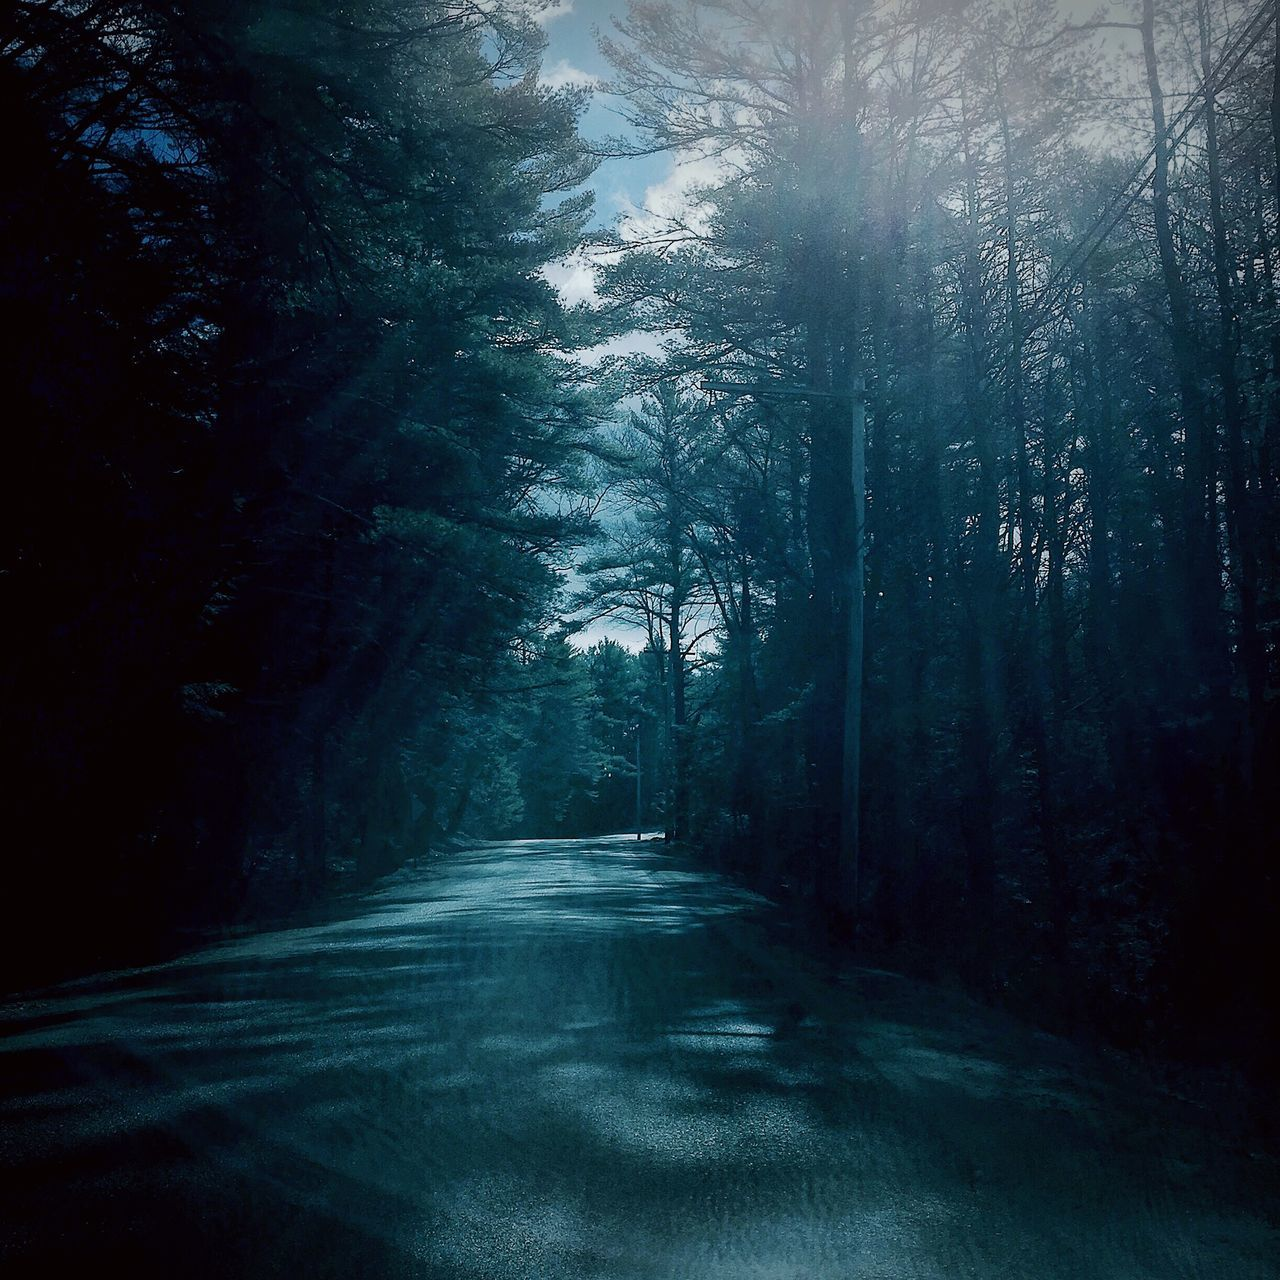 tree, nature, tranquility, forest, the way forward, tranquil scene, beauty in nature, no people, day, landscape, scenics, outdoors, road, growth